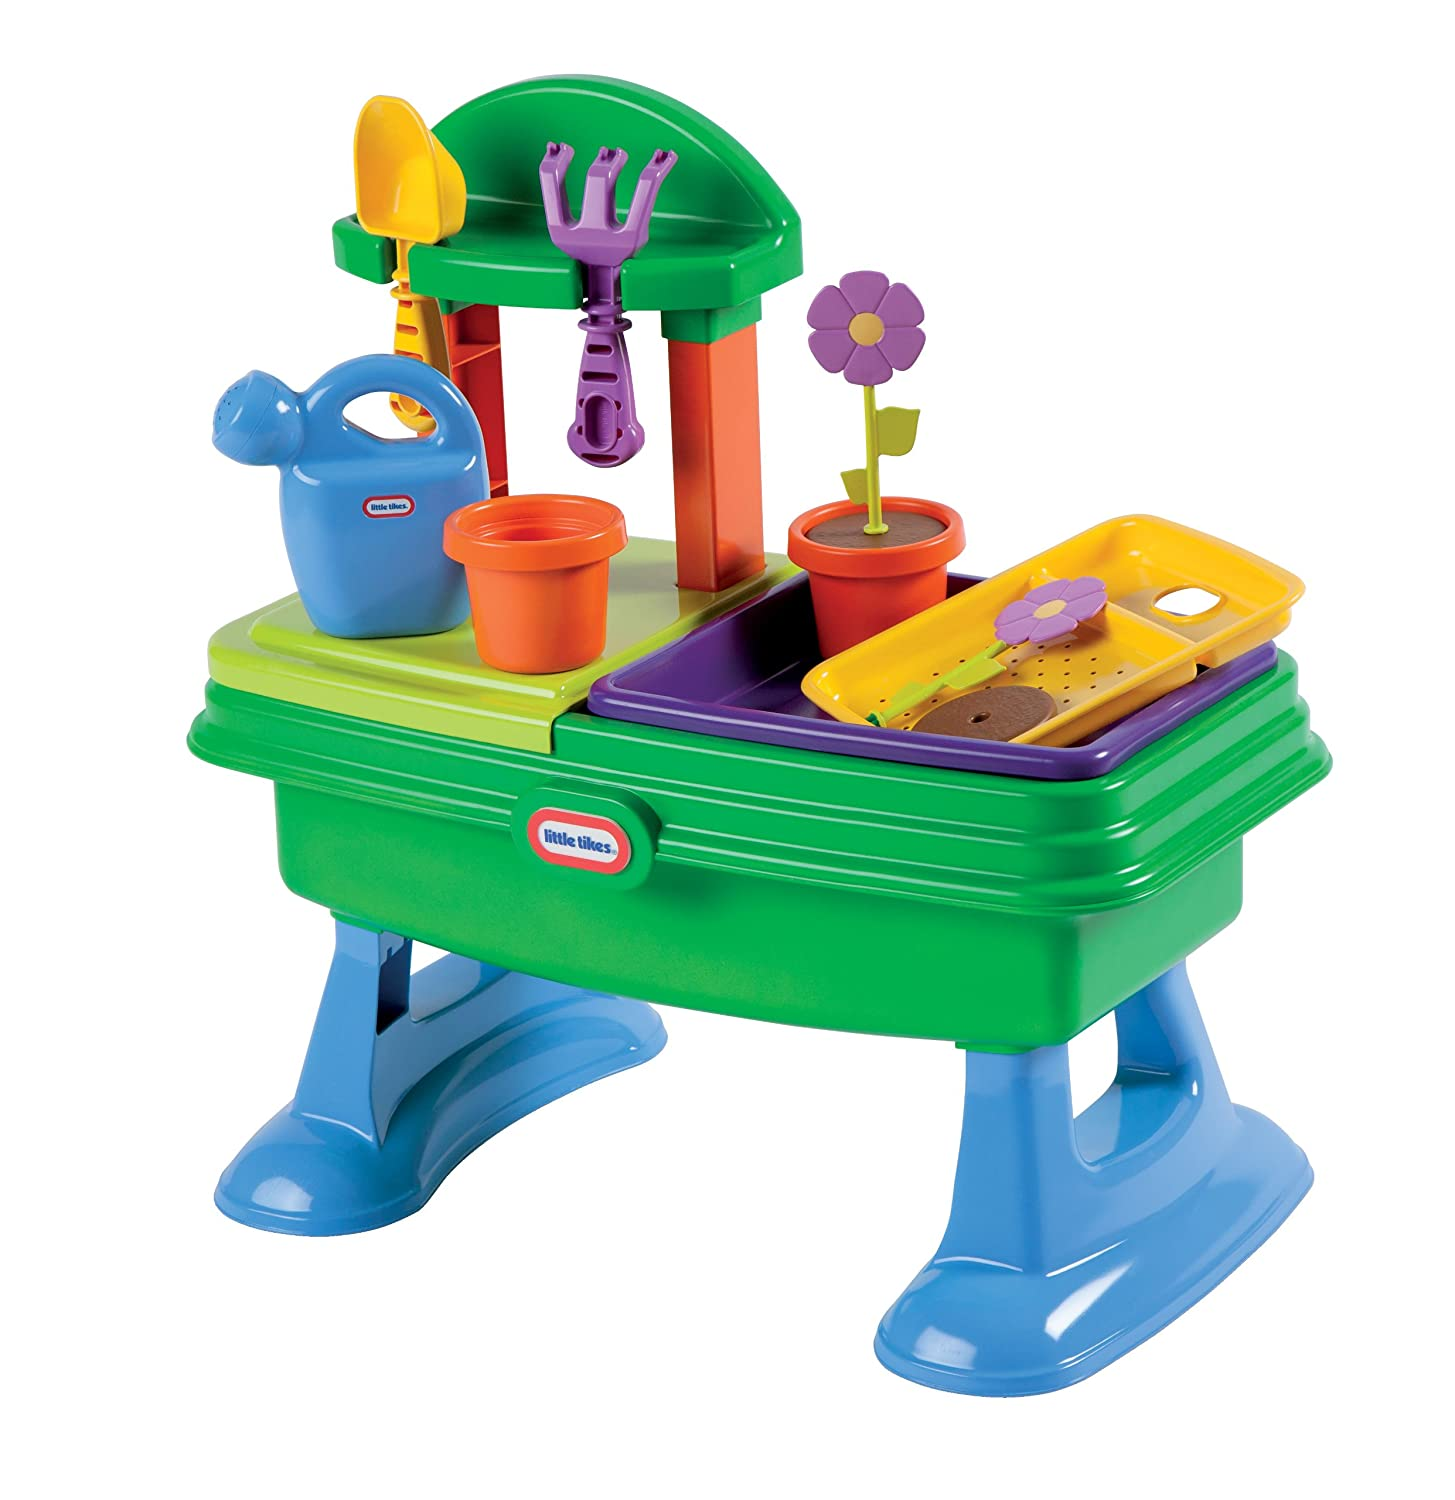 Top Little Tikes Toys : Little tikes garden table one stop toy store